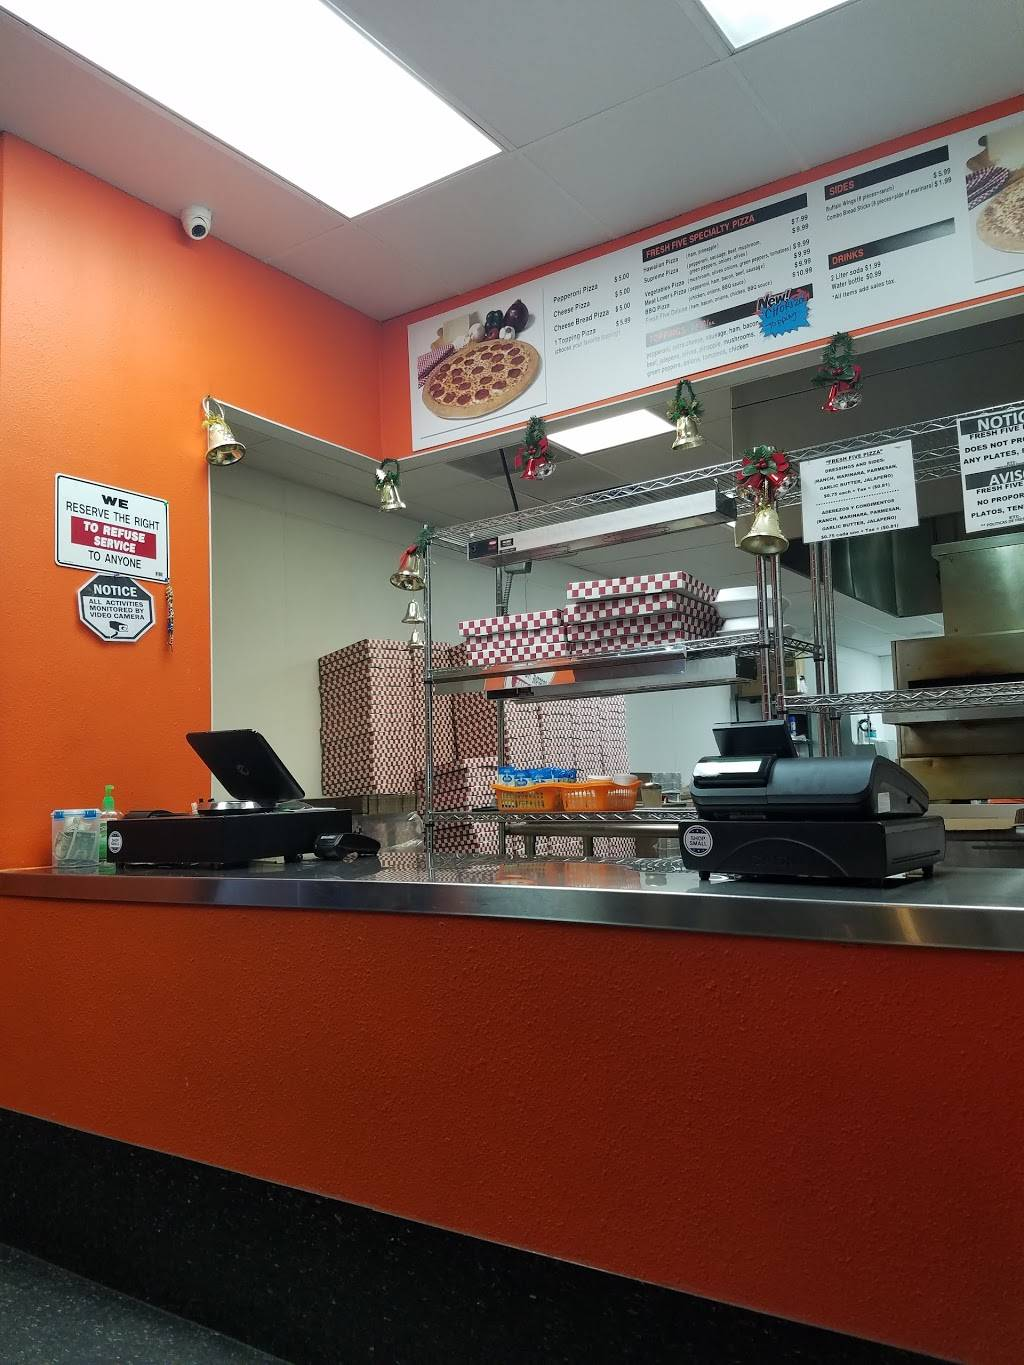 Fresh Five Pizza | meal takeaway | 565 S Knott Ave, Anaheim, CA 92804, USA | 7148332239 OR +1 714-833-2239